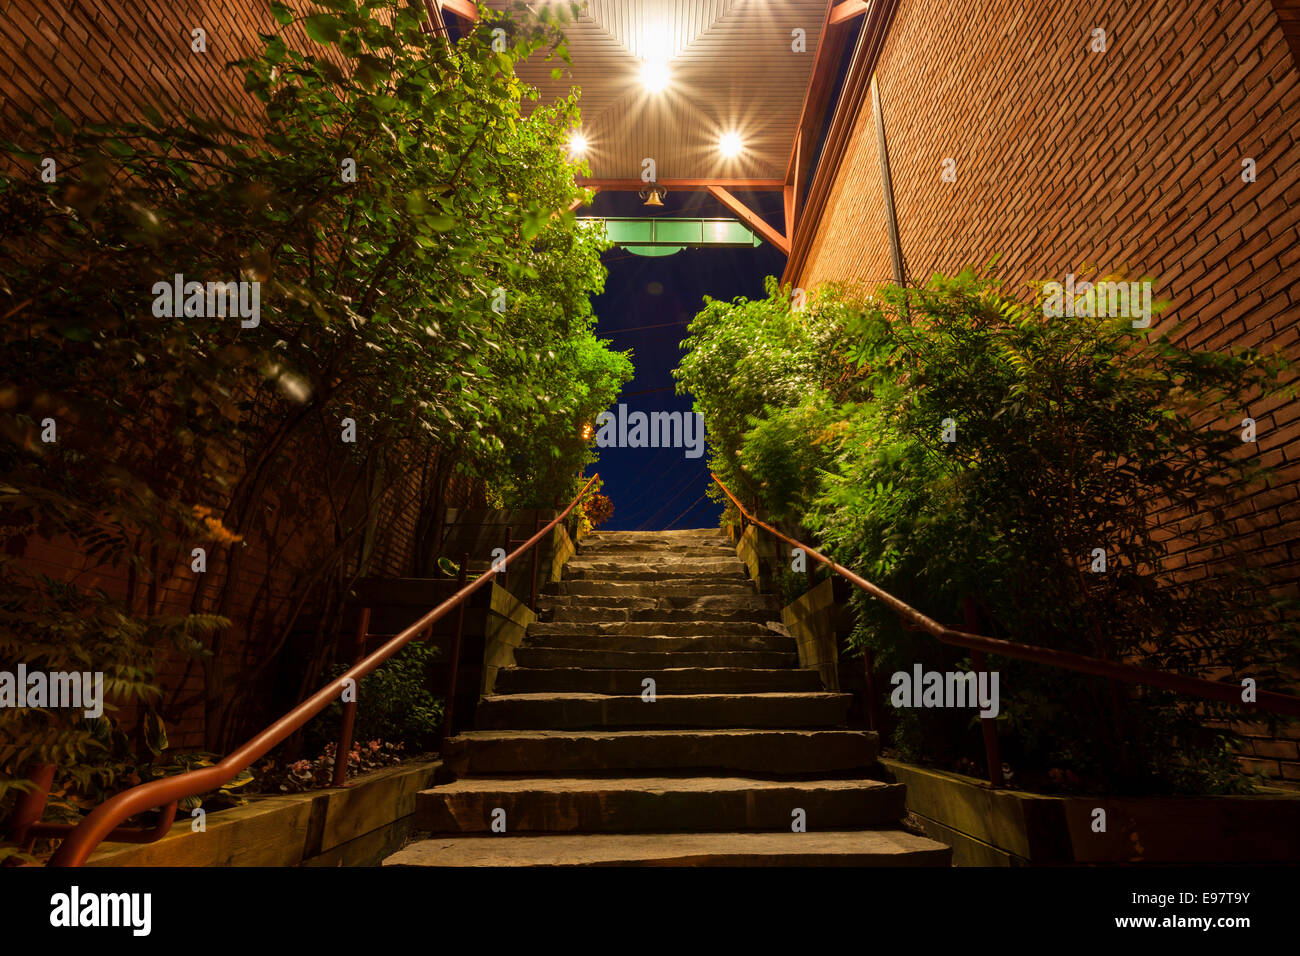 The Wallis Mill Laneway Stairs looking up towards Maple Street in downtown Port Carling at dusk. Ontario, Canada. - Stock Image